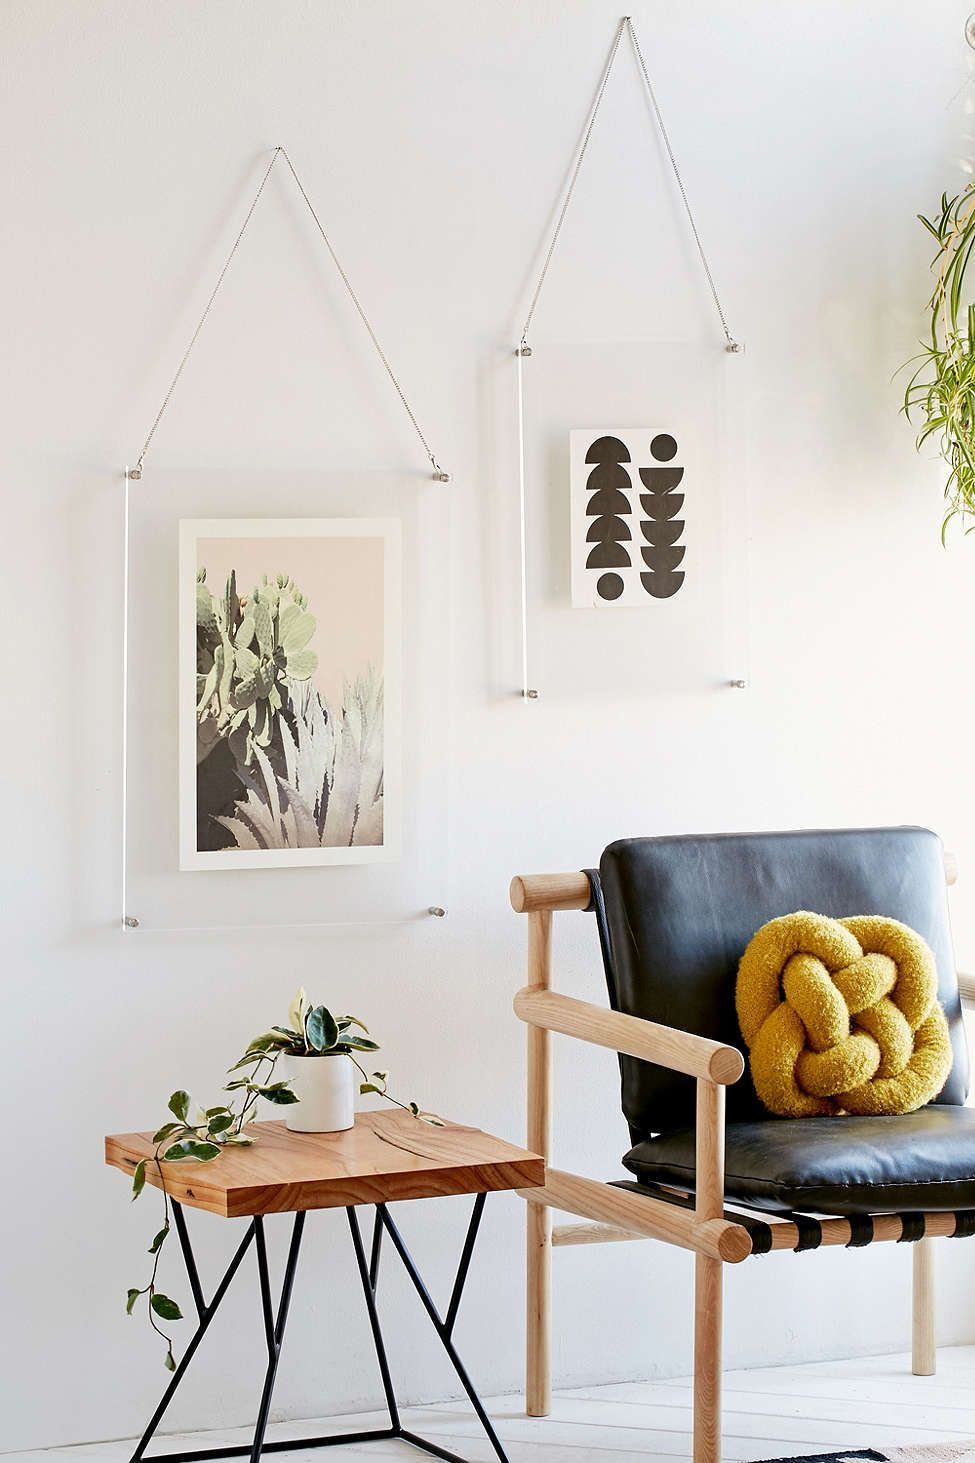 5 Ways To Use Acrylic Decor Throughout Your House // Living Room   Acrylic  Picture Frames Let Your Photos Do All The Talking And Prevent The Frame  From ...